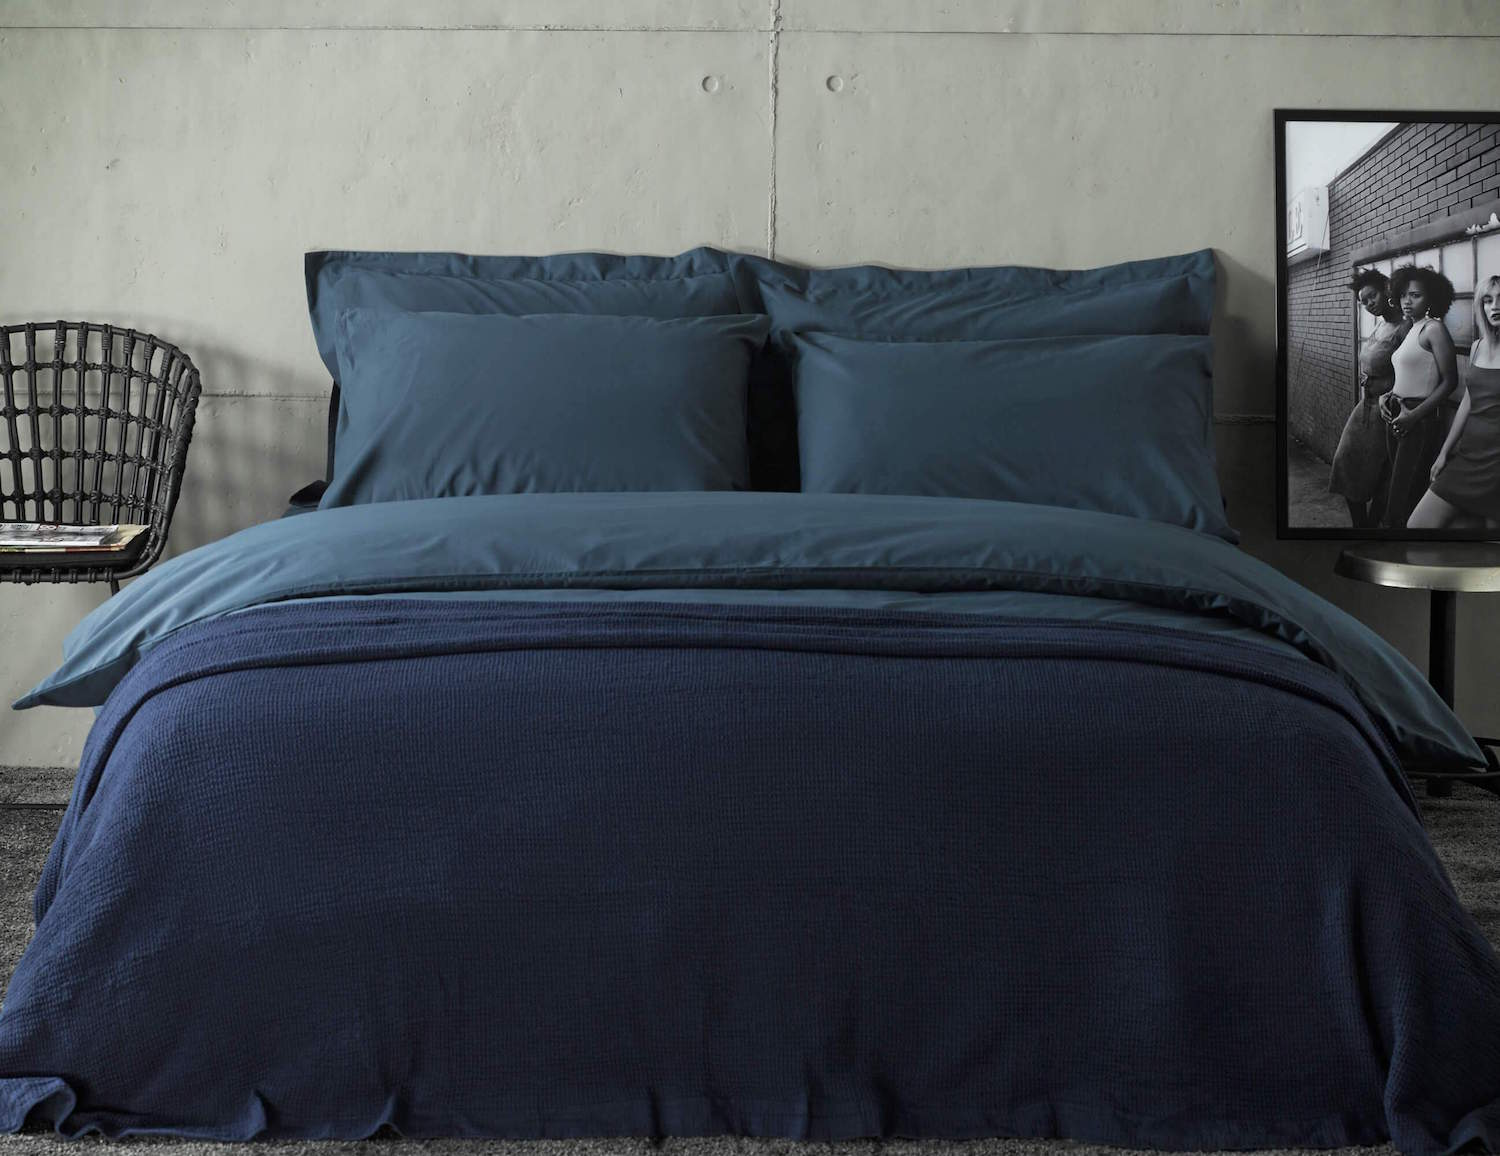 navy duvet set with bedspread and extra pillowcases